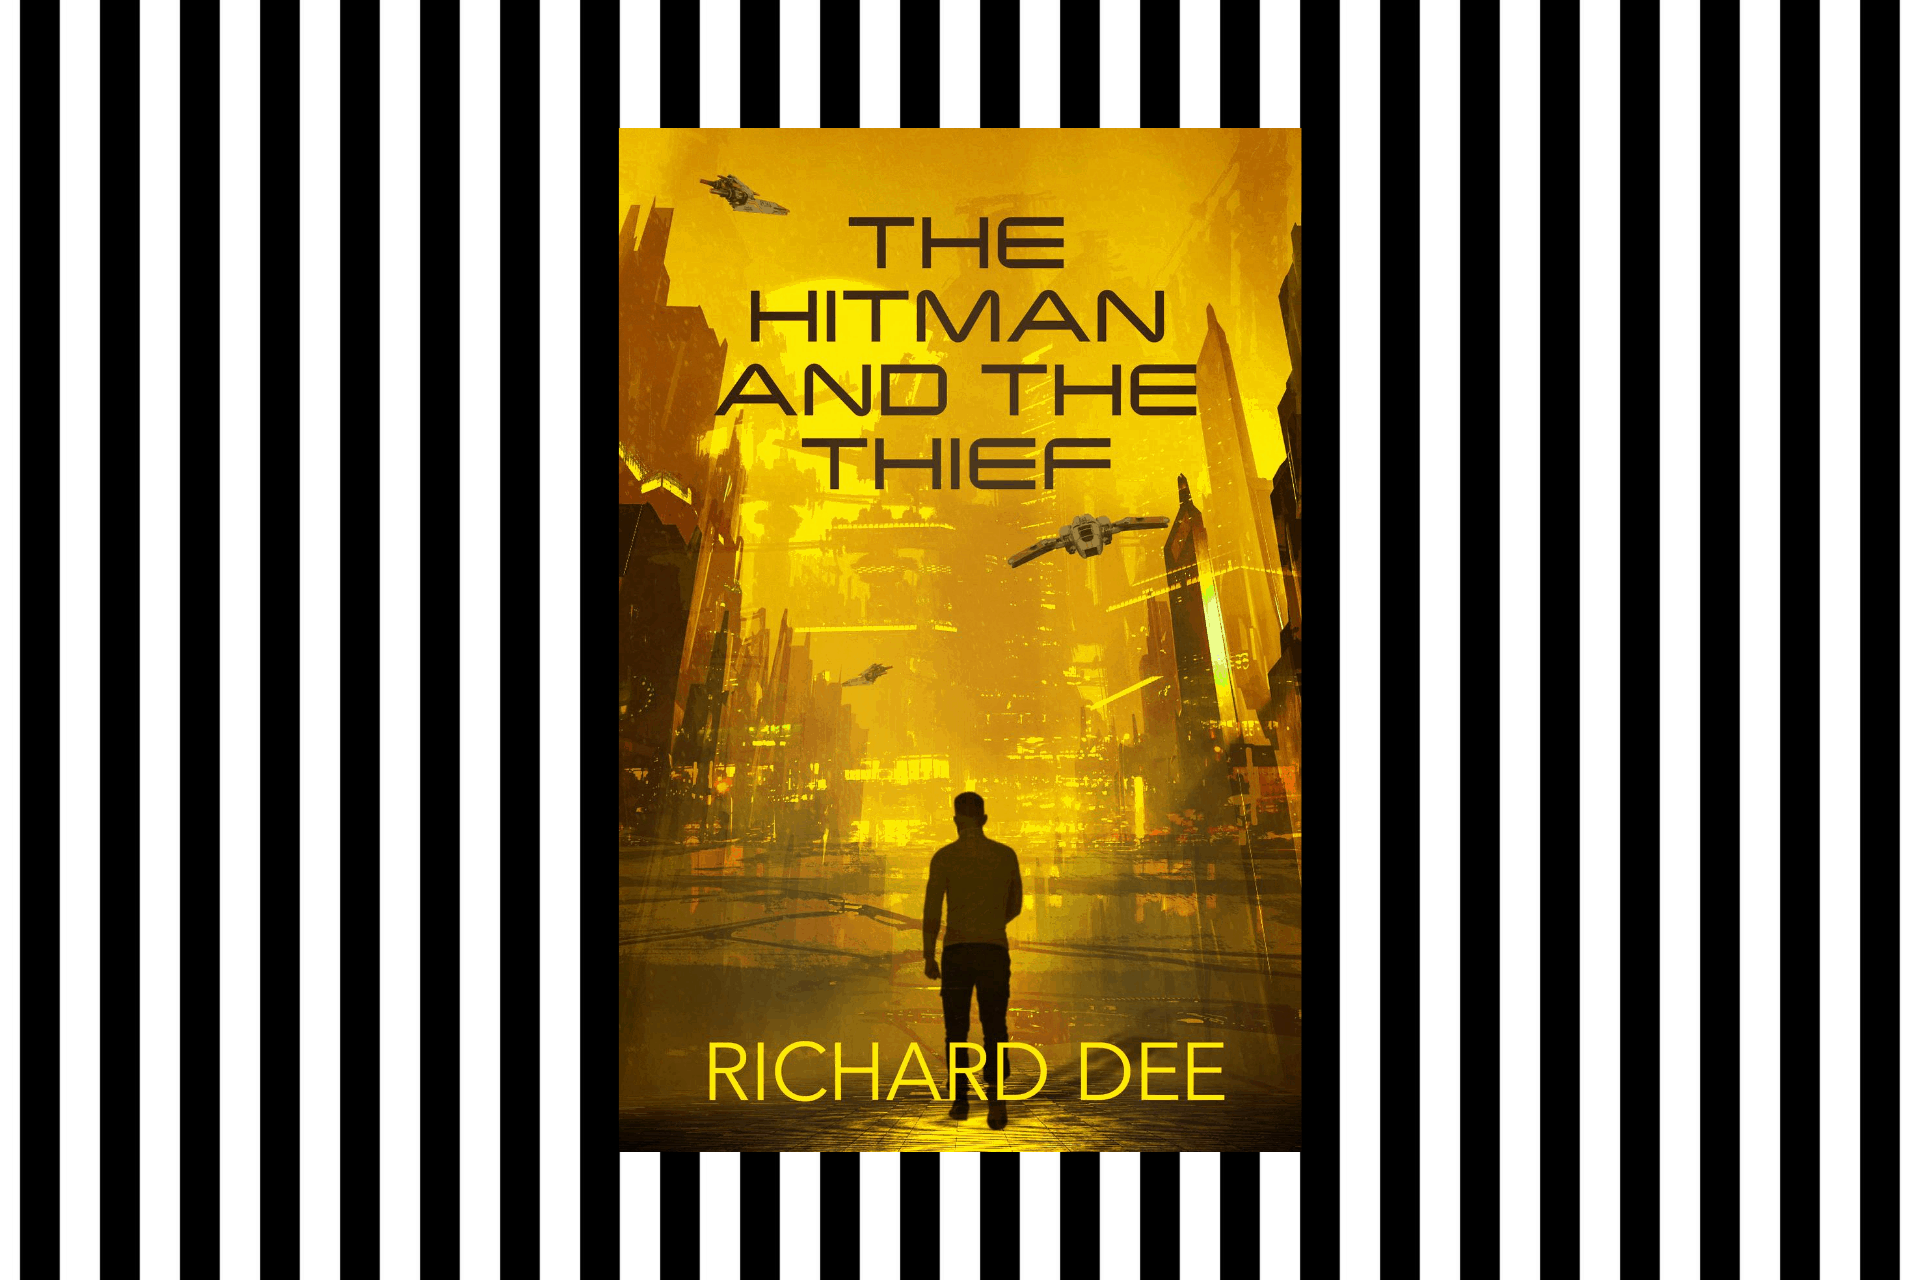 The cover of The Hitman and The Thief, by Richard Dee